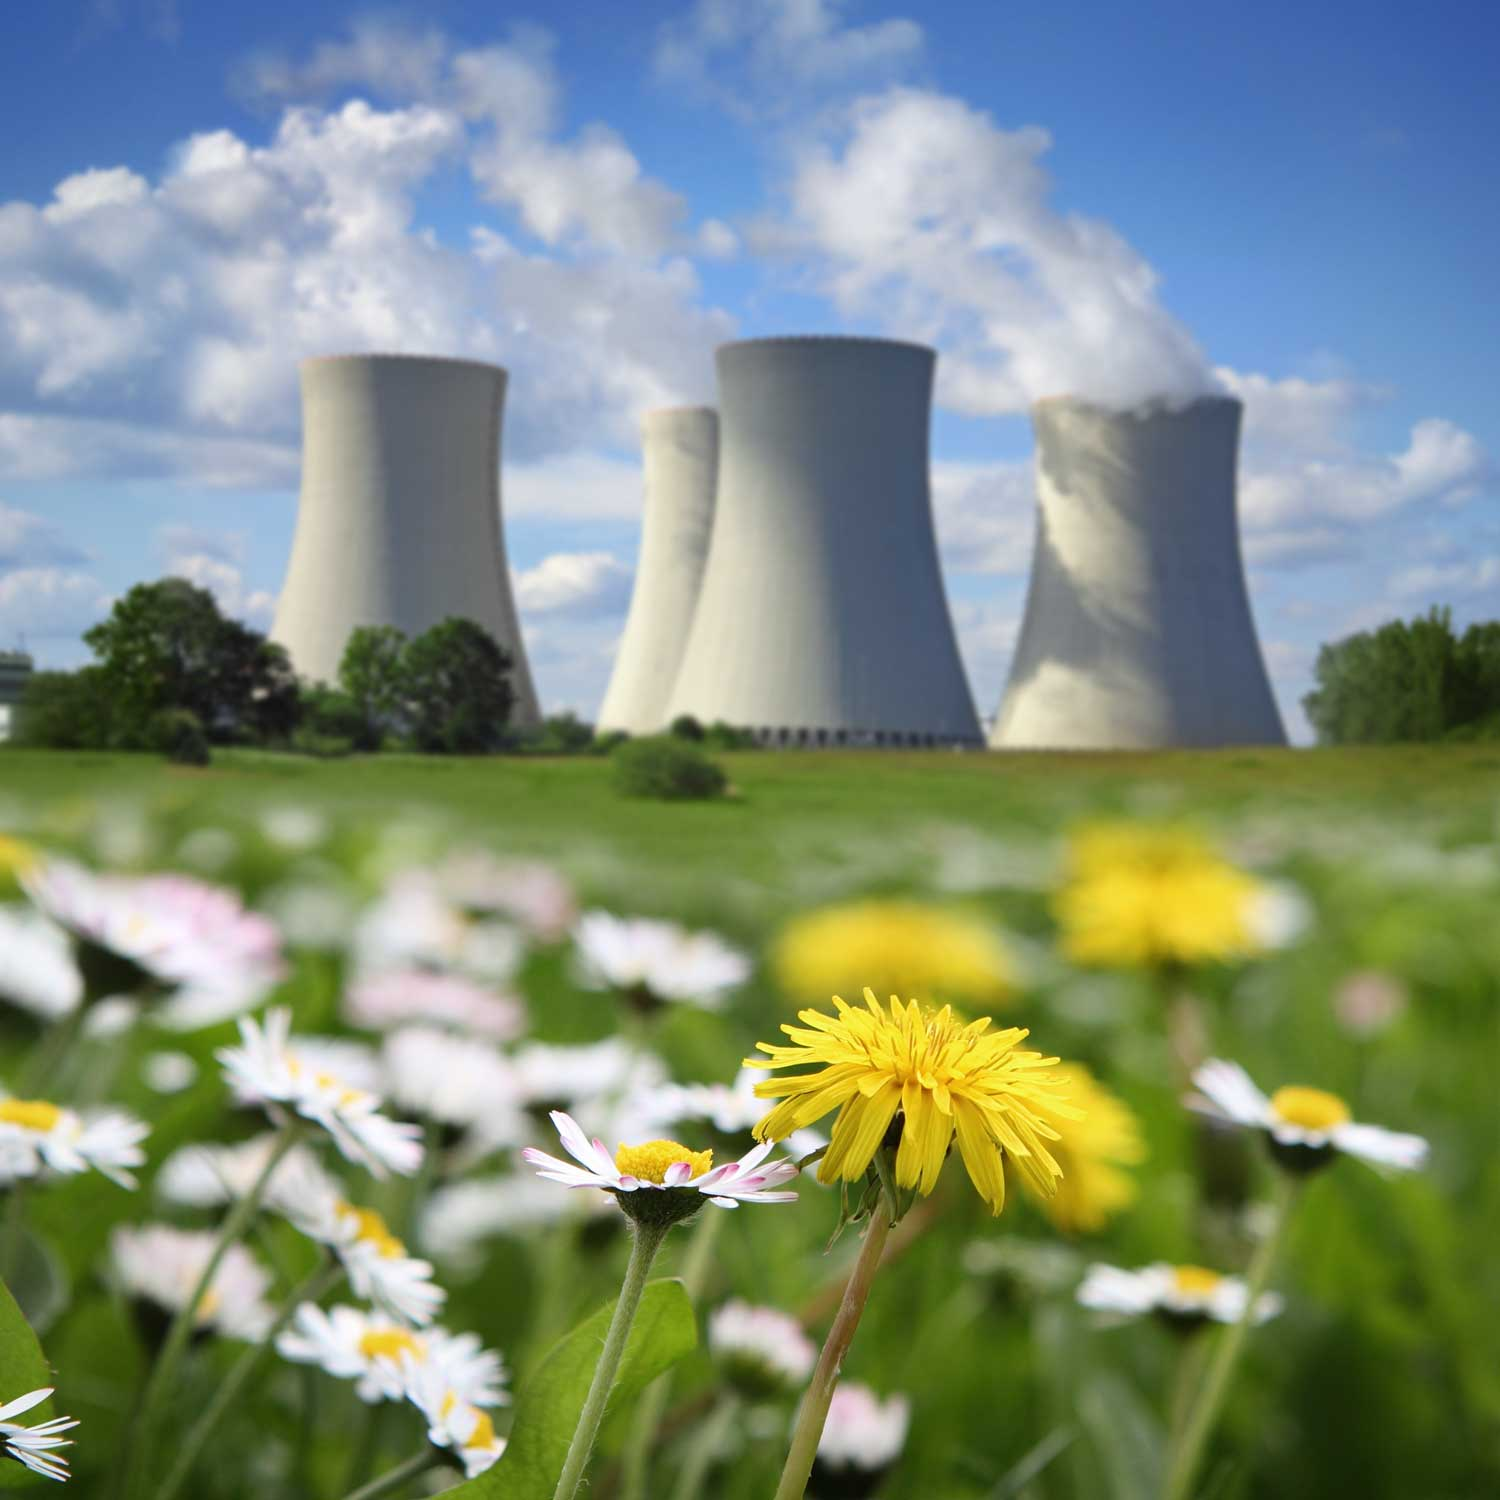 fit for nuclear new sectors nuclear UTP Precision Engineers nuclear energy UK engineering energy supply